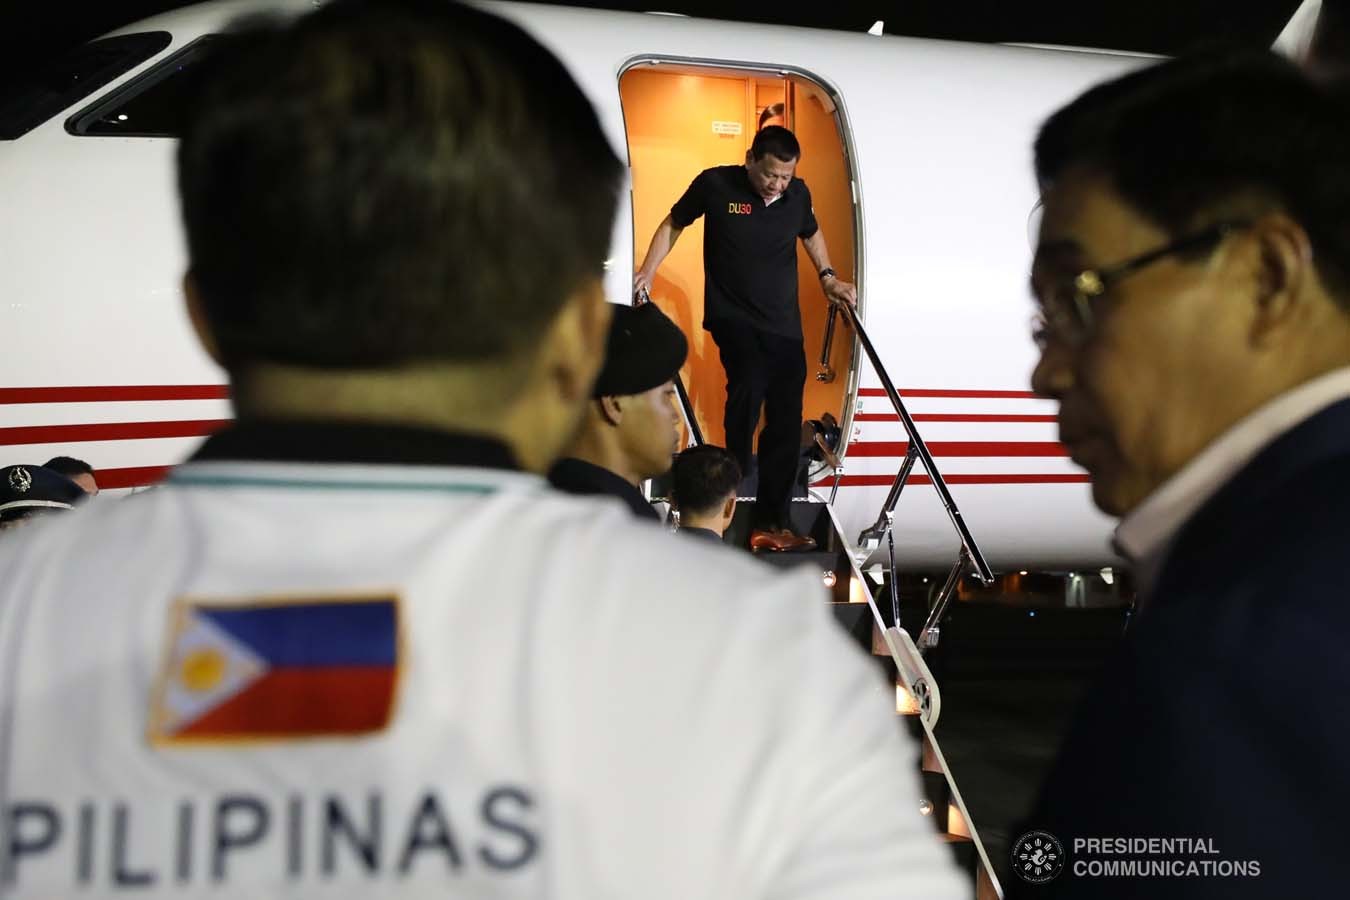 President Rodrigo Roa Duterte disembarks from a plane upon his arrival at the Villamor Air Base in Pasay City on November 4, 2019 following his successful participation in the 35th Association of Southeast Asian Nations (ASEAN) Summit and Related Summits in the Kingdom of Thailand. ROBINSON NIÑAL JR./PRESIDENTIAL PHOTO